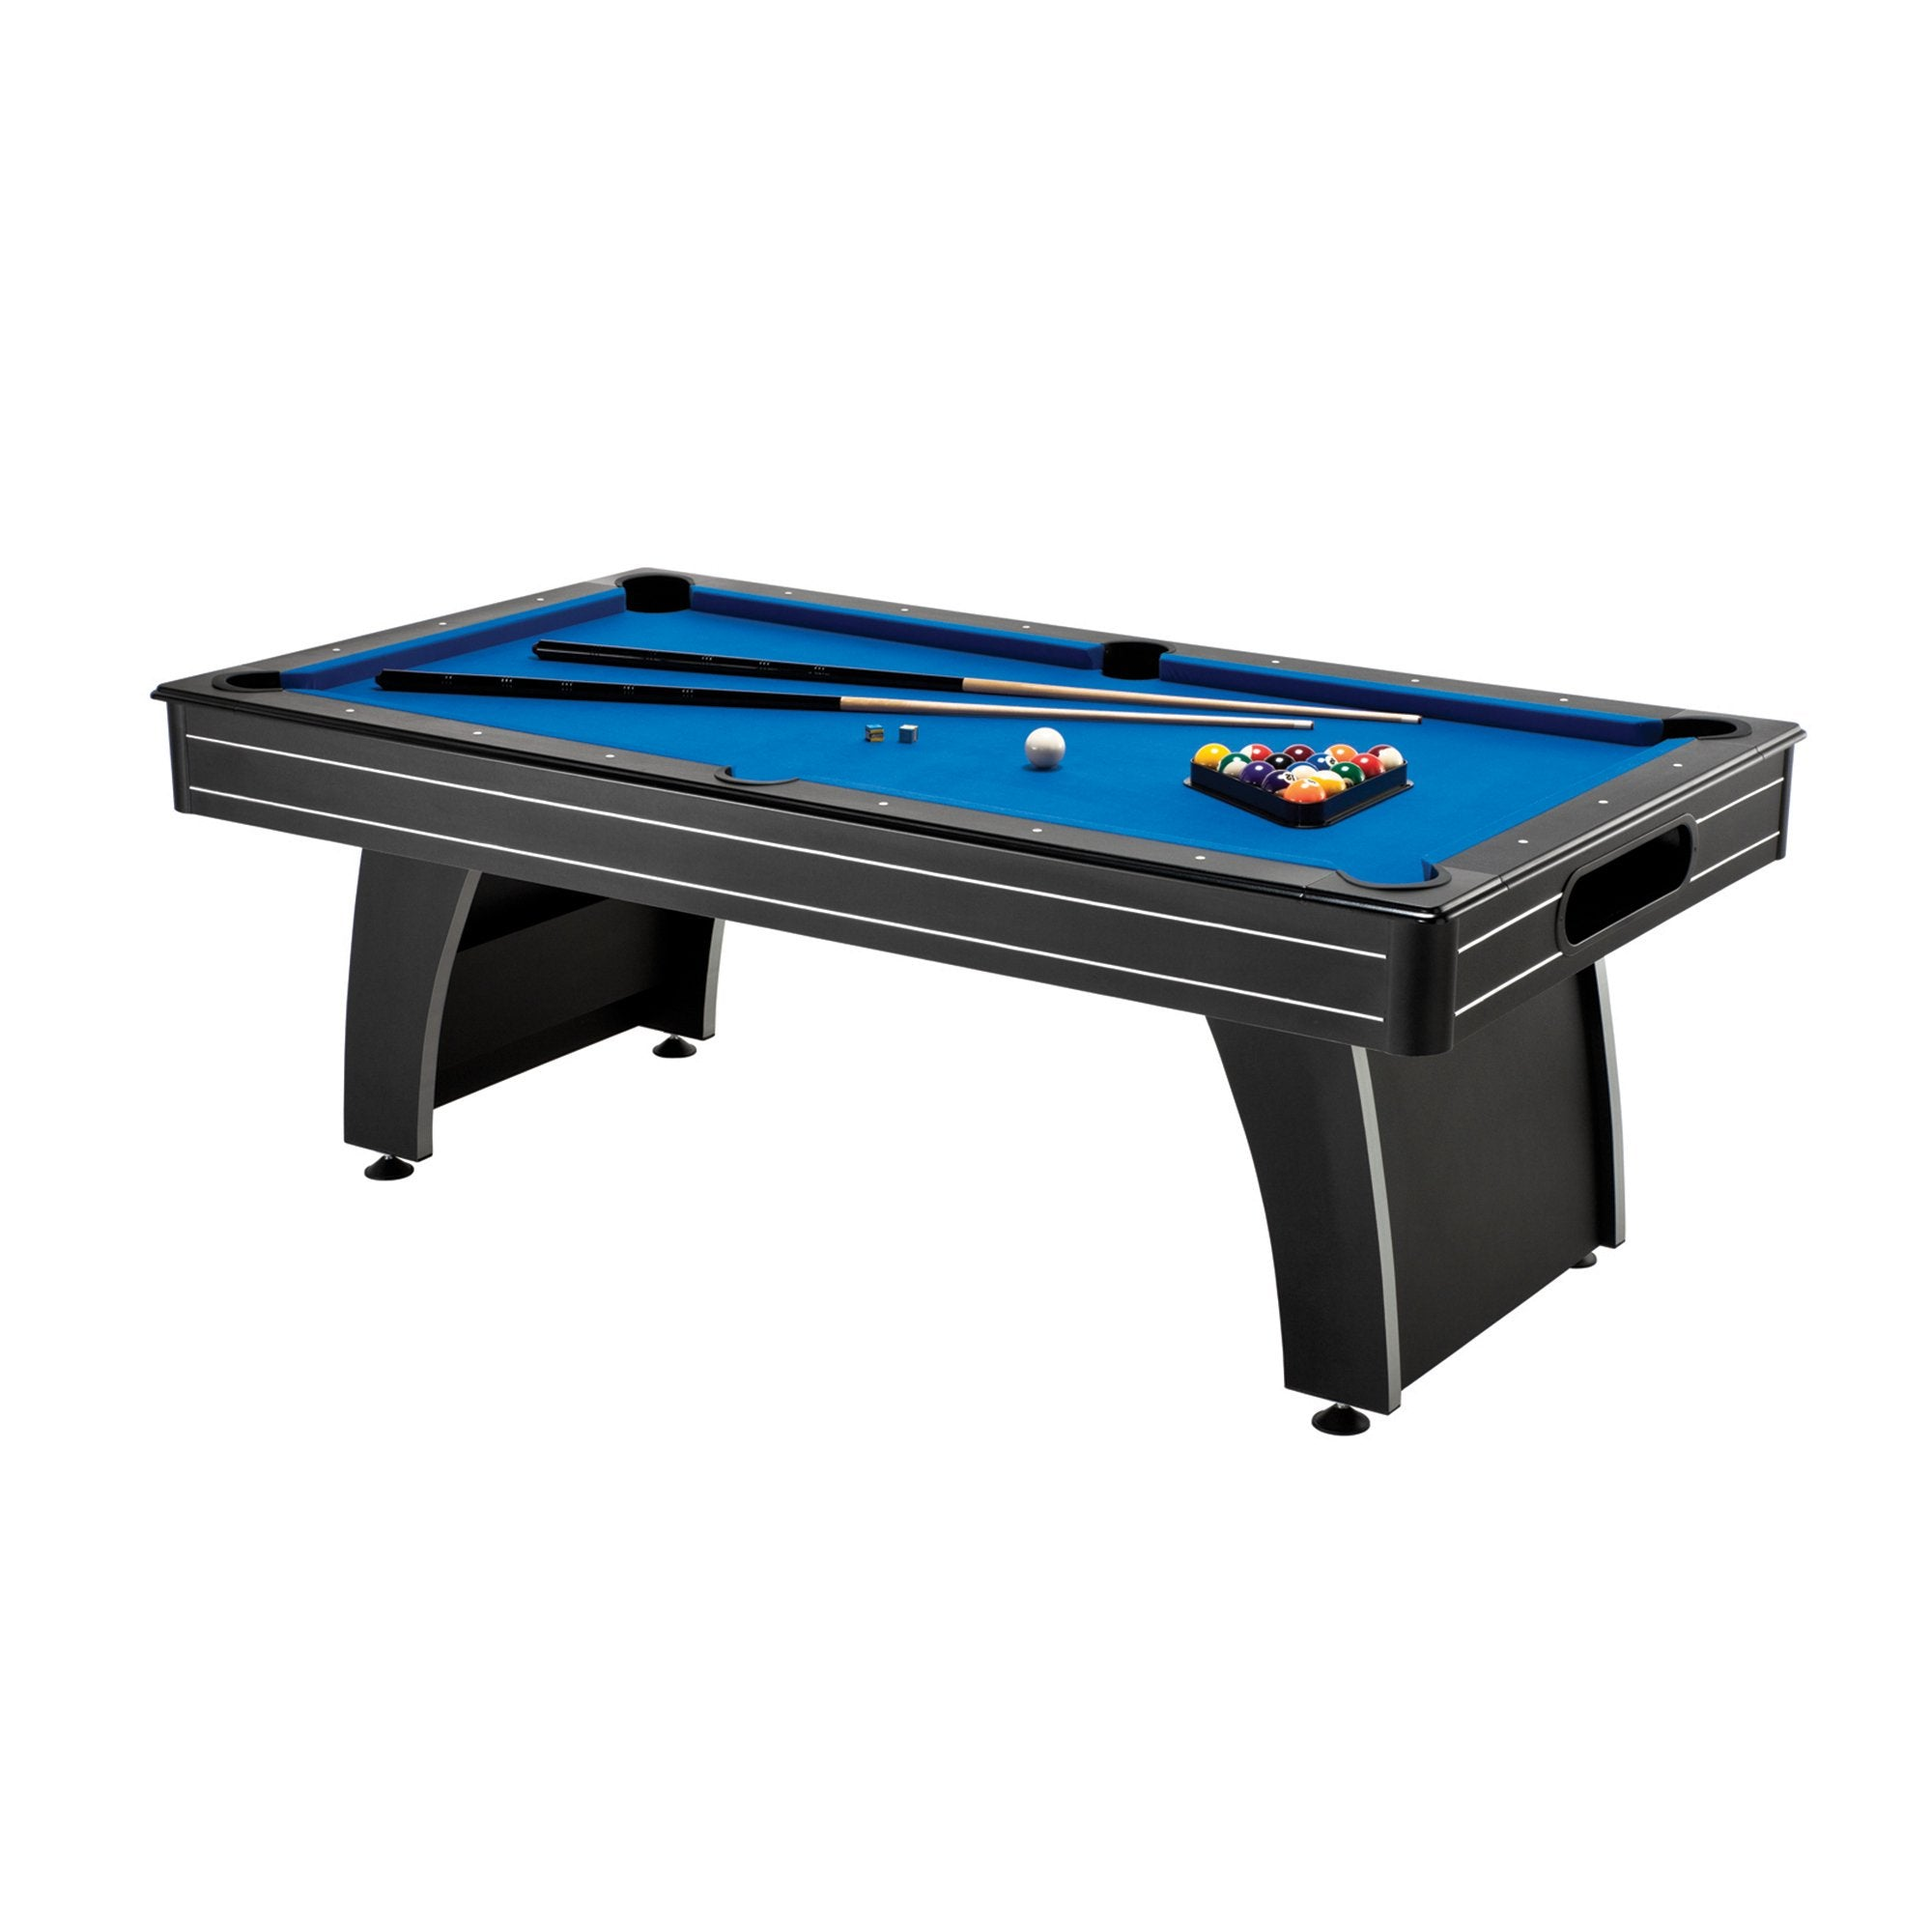 Fat Cat Tucson MMXI 7ft Billiard Table with Ball Return - Gaming Blaze